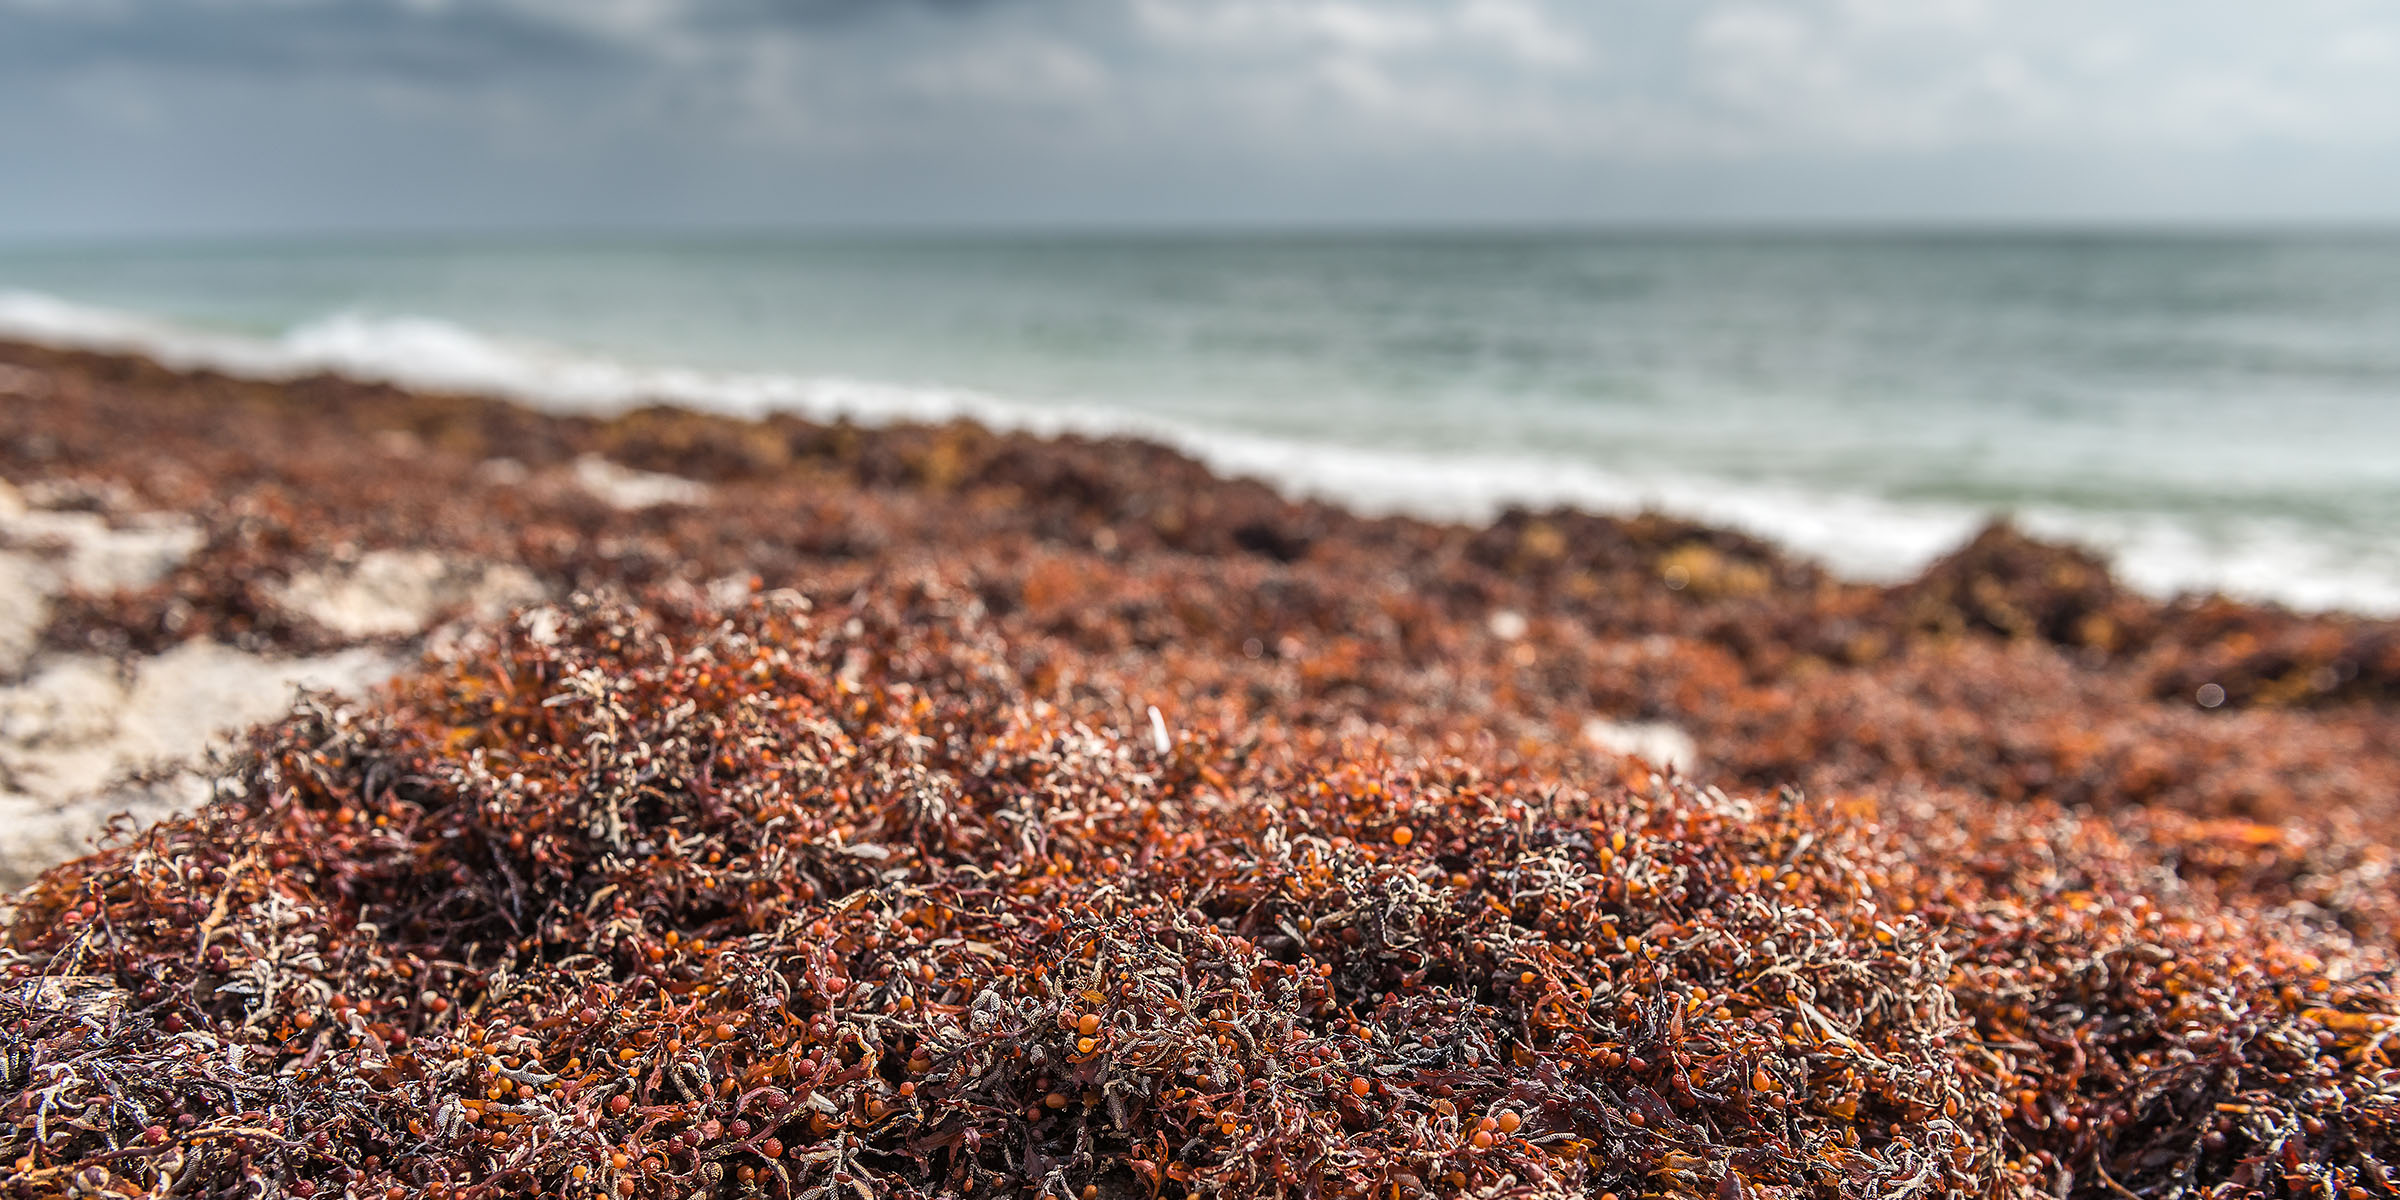 Smelly seaweed is overtaking beaches